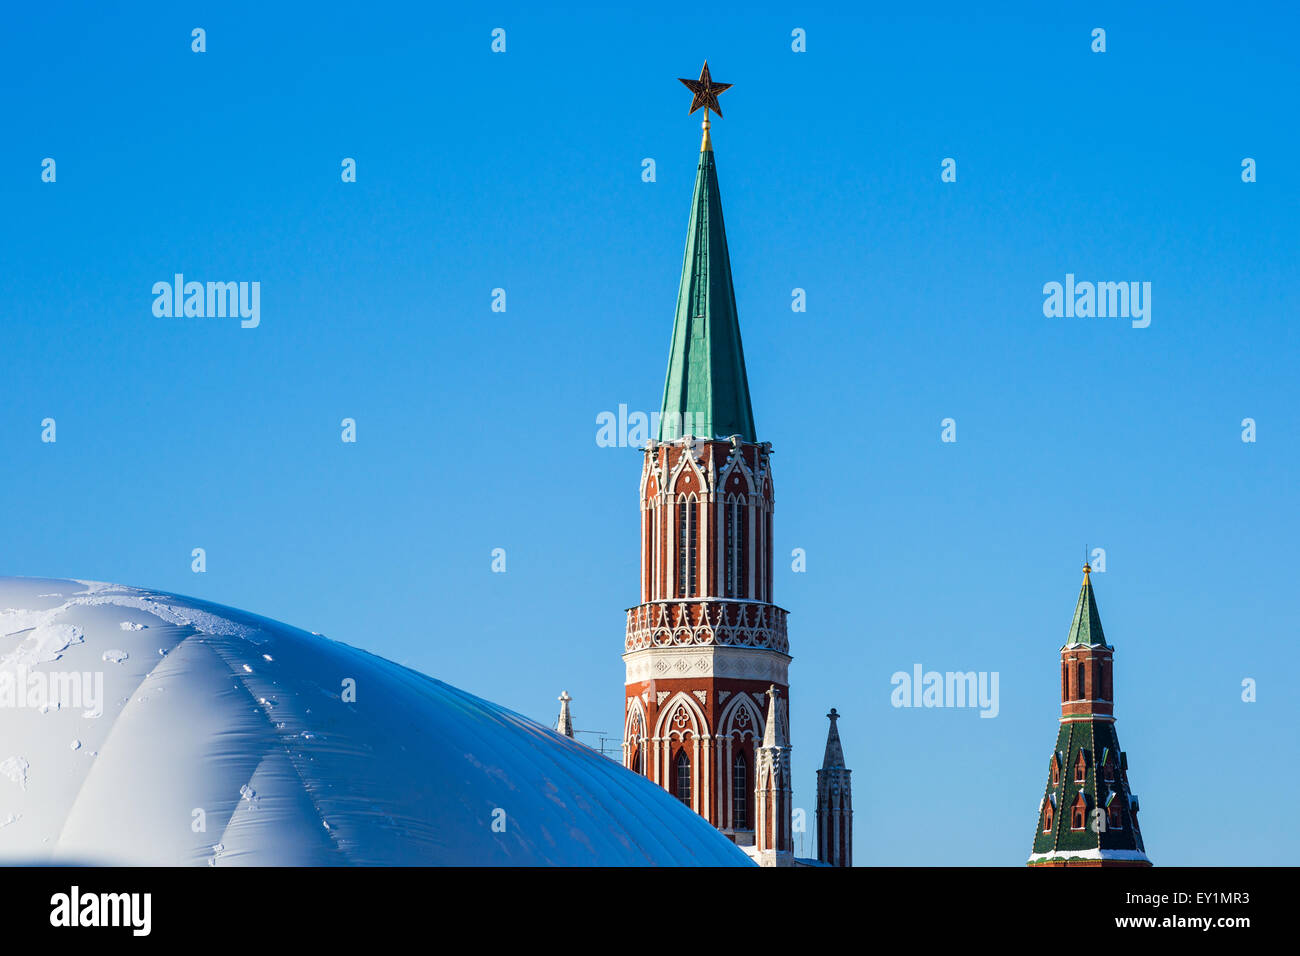 Nikolskaya tower of Moscow Kremlin and protection cover over Lenin's mausoleum which was under reconstruction - Stock Image